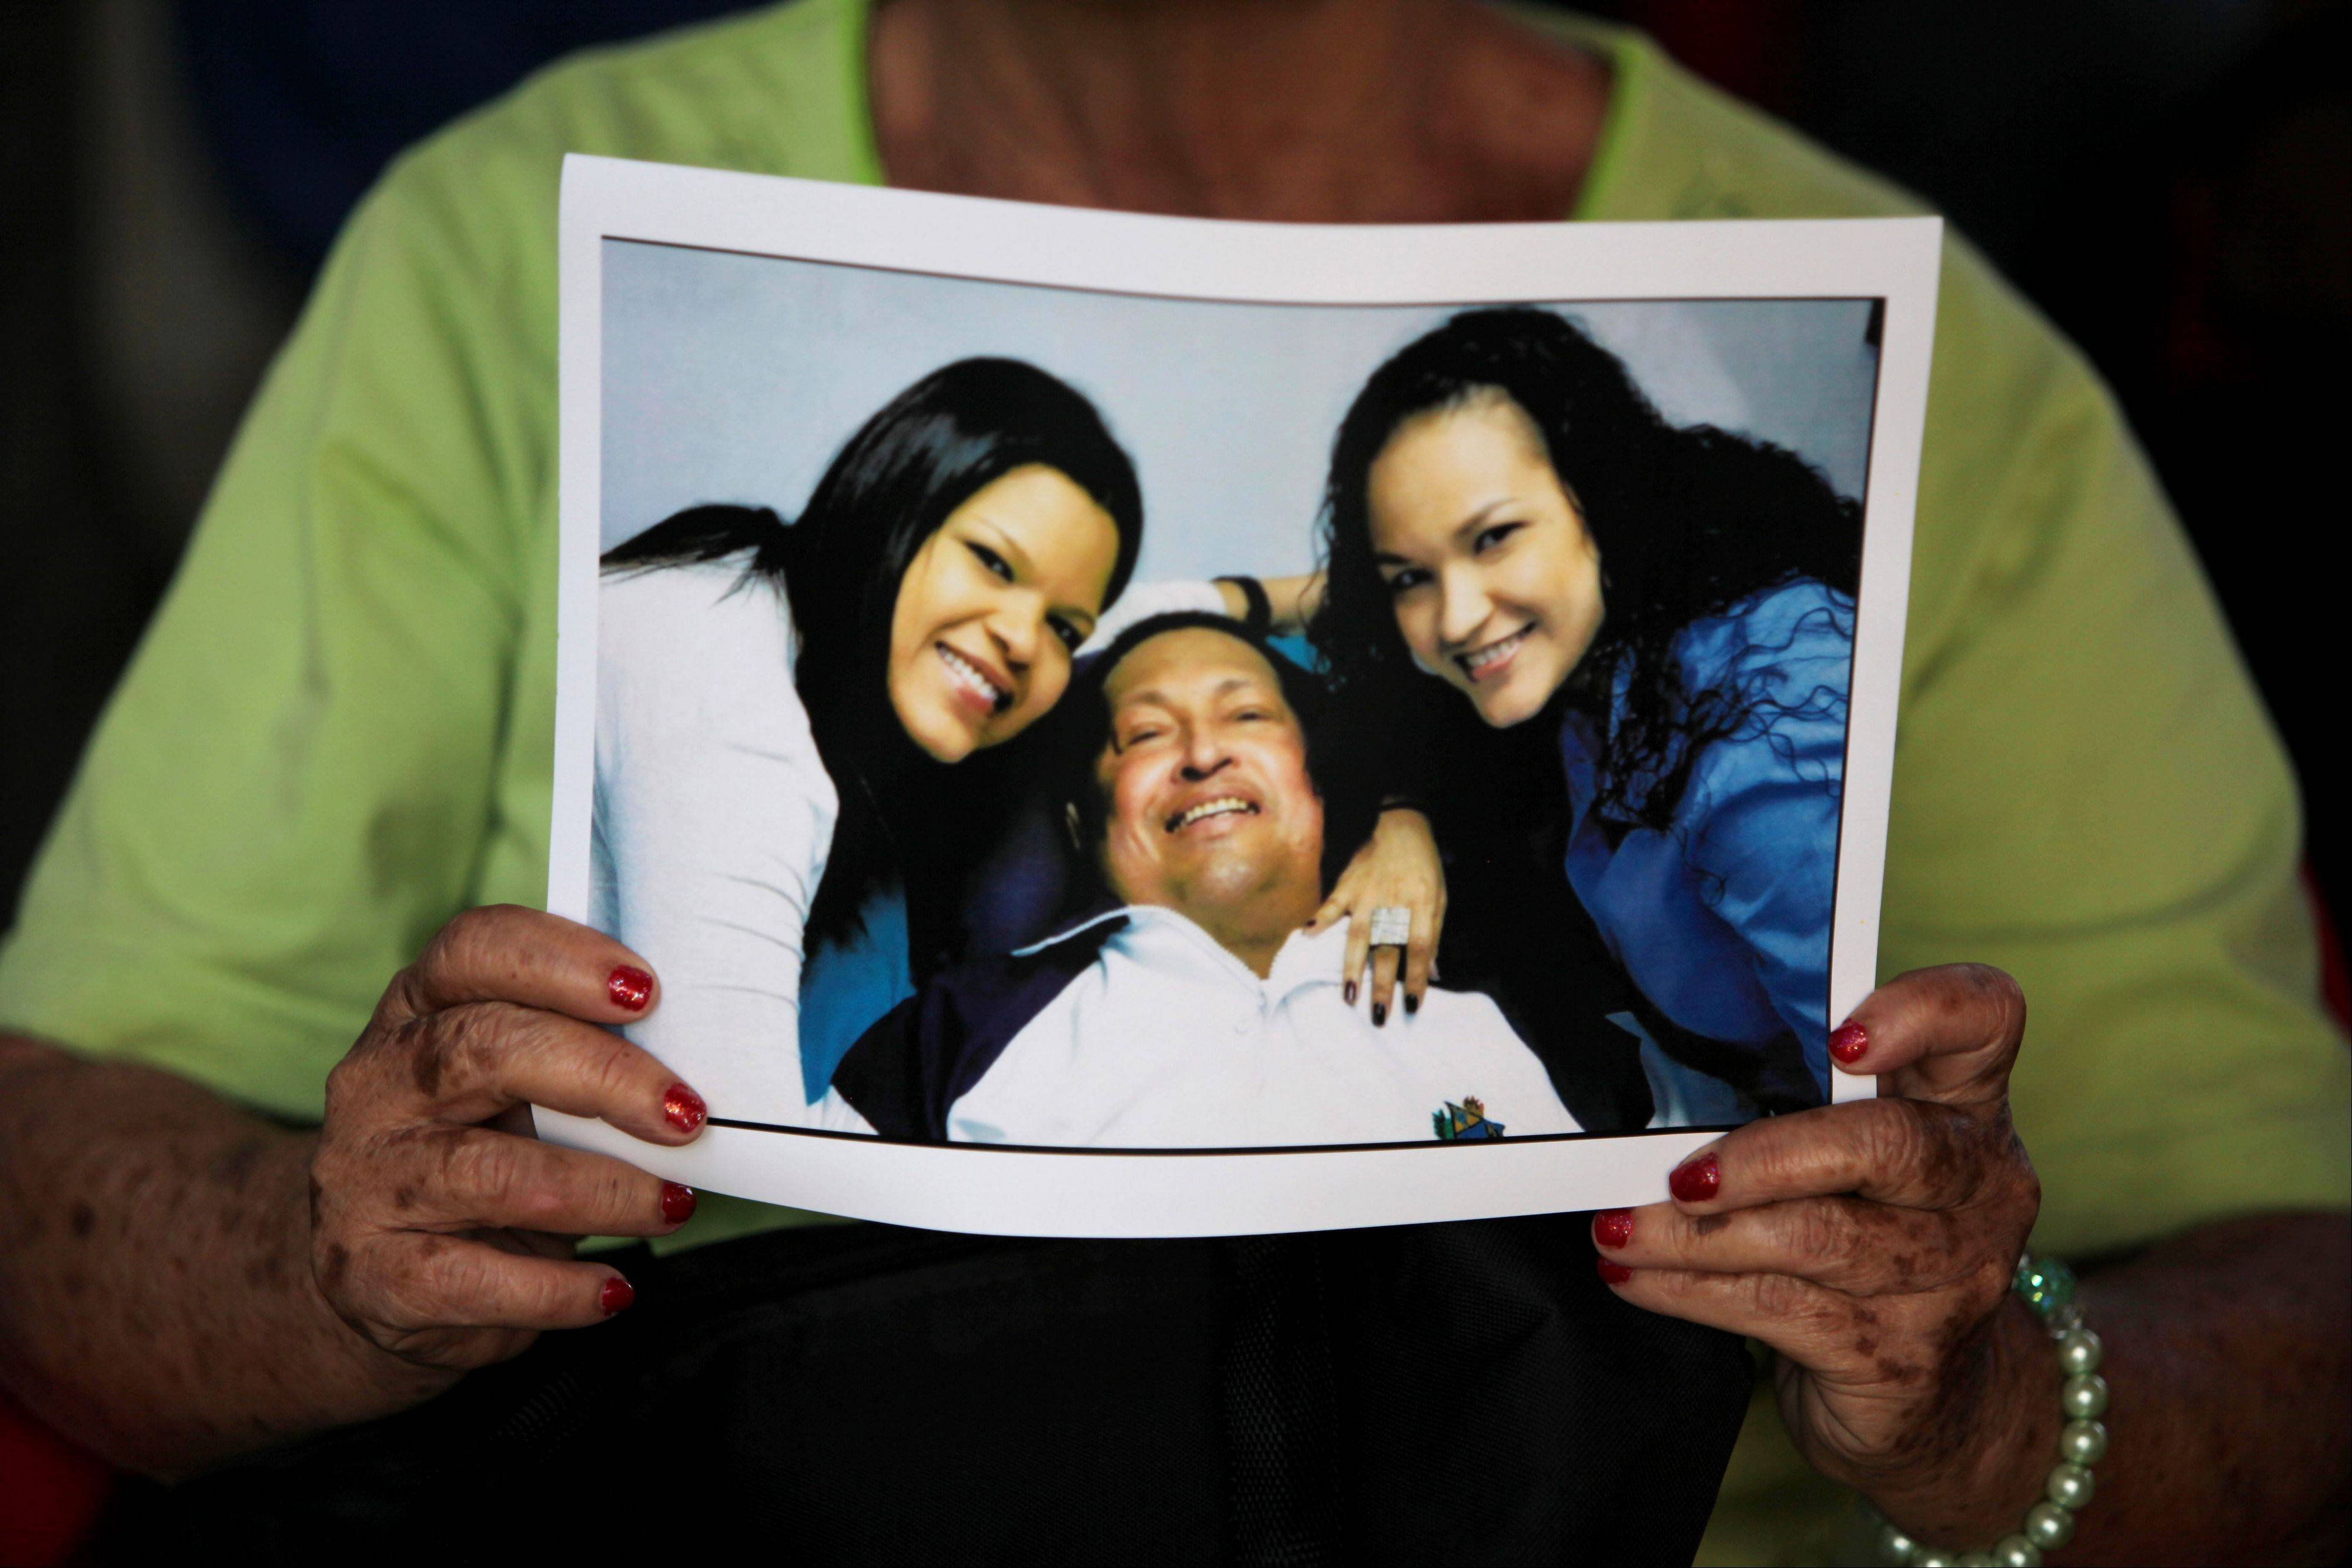 A woman holds a purchased copy of a photo showing Venezuela�s President Hugo Chavez at the hospital in Havana, with two of his daughters. Venezuela�s government said that President Hugo Chavez�s respiratory problems have gotten worse and that the ailing leader is in �very delicate� condition. Communications Minister Ernesto Villegas said late Monday March 4, 2013 in a statement read on national television that Chavez has a �severe infection.� The 58-year-old Chavez first revealed an unspecified cancer in the pelvic region in June 2011, and reported undergoing radiation treatment and chemotherapy after earlier operations. He underwent cancer surgery in Cuba on Dec. 11 and flew back to Caracas on Feb. 18.